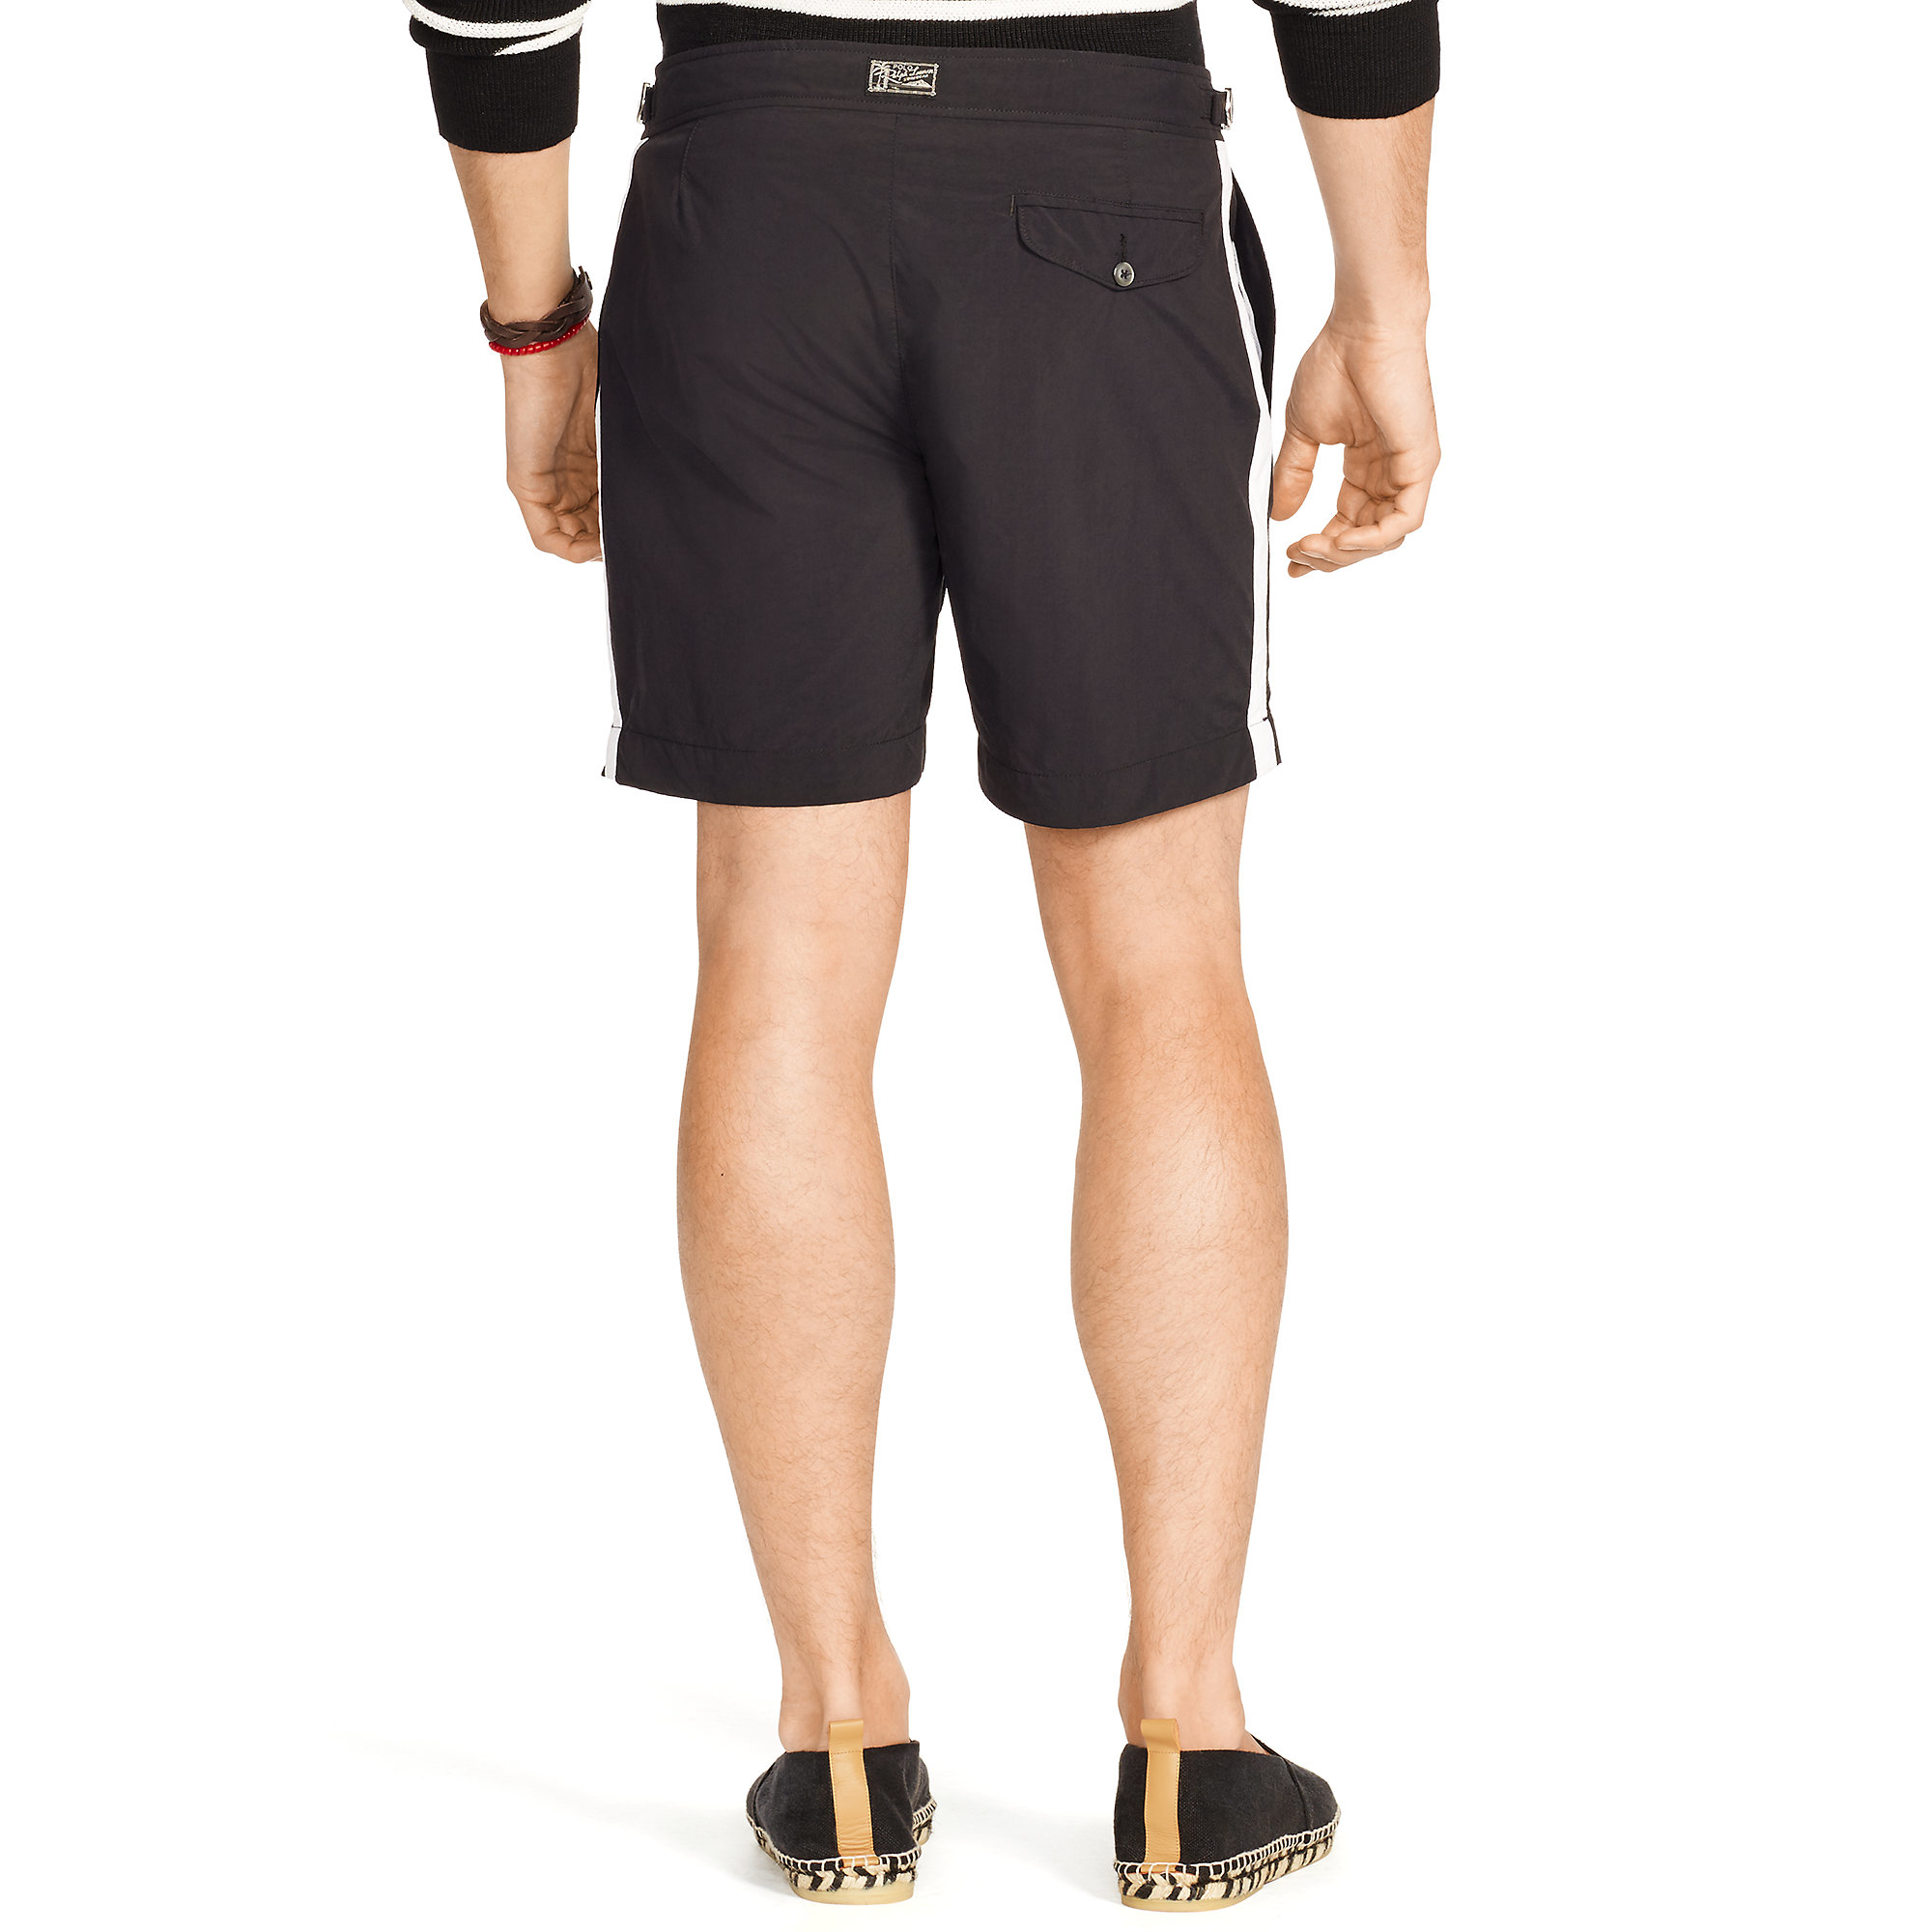 6b59ade652 Polo Ralph Lauren 7-inch Monaco Solid Swim Trunk in Black for Men - Lyst